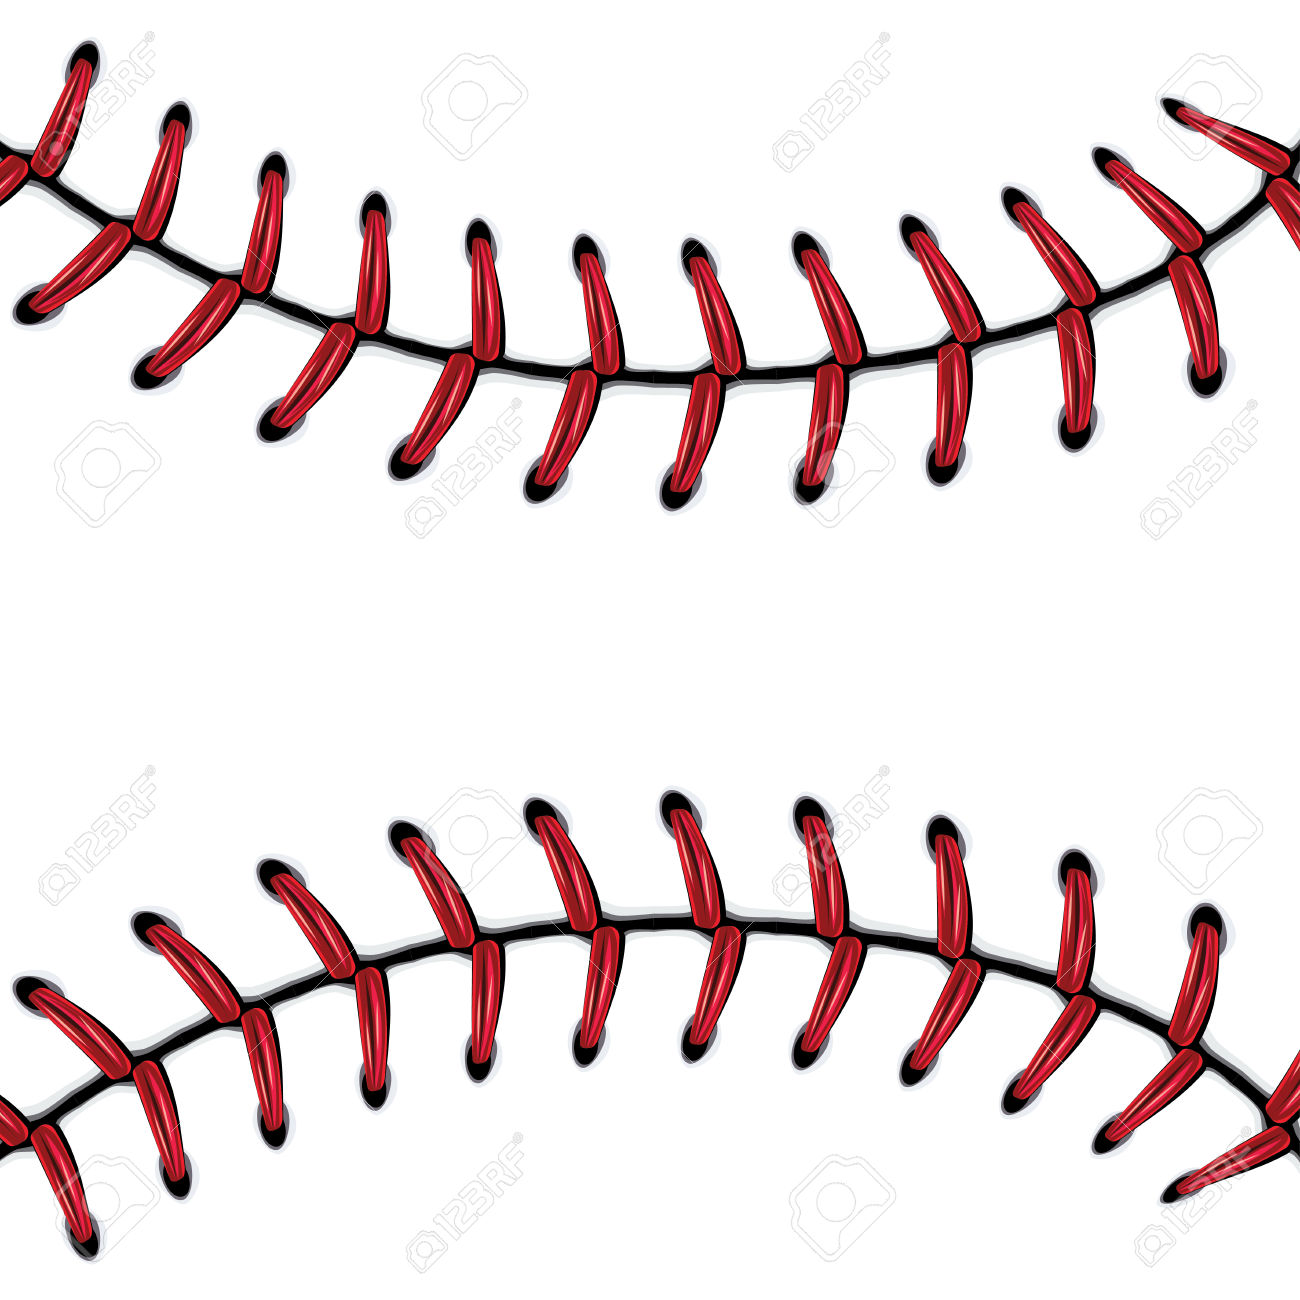 1300x1300 Softball Laces Clipart Amp Softball Laces Clip Art Images